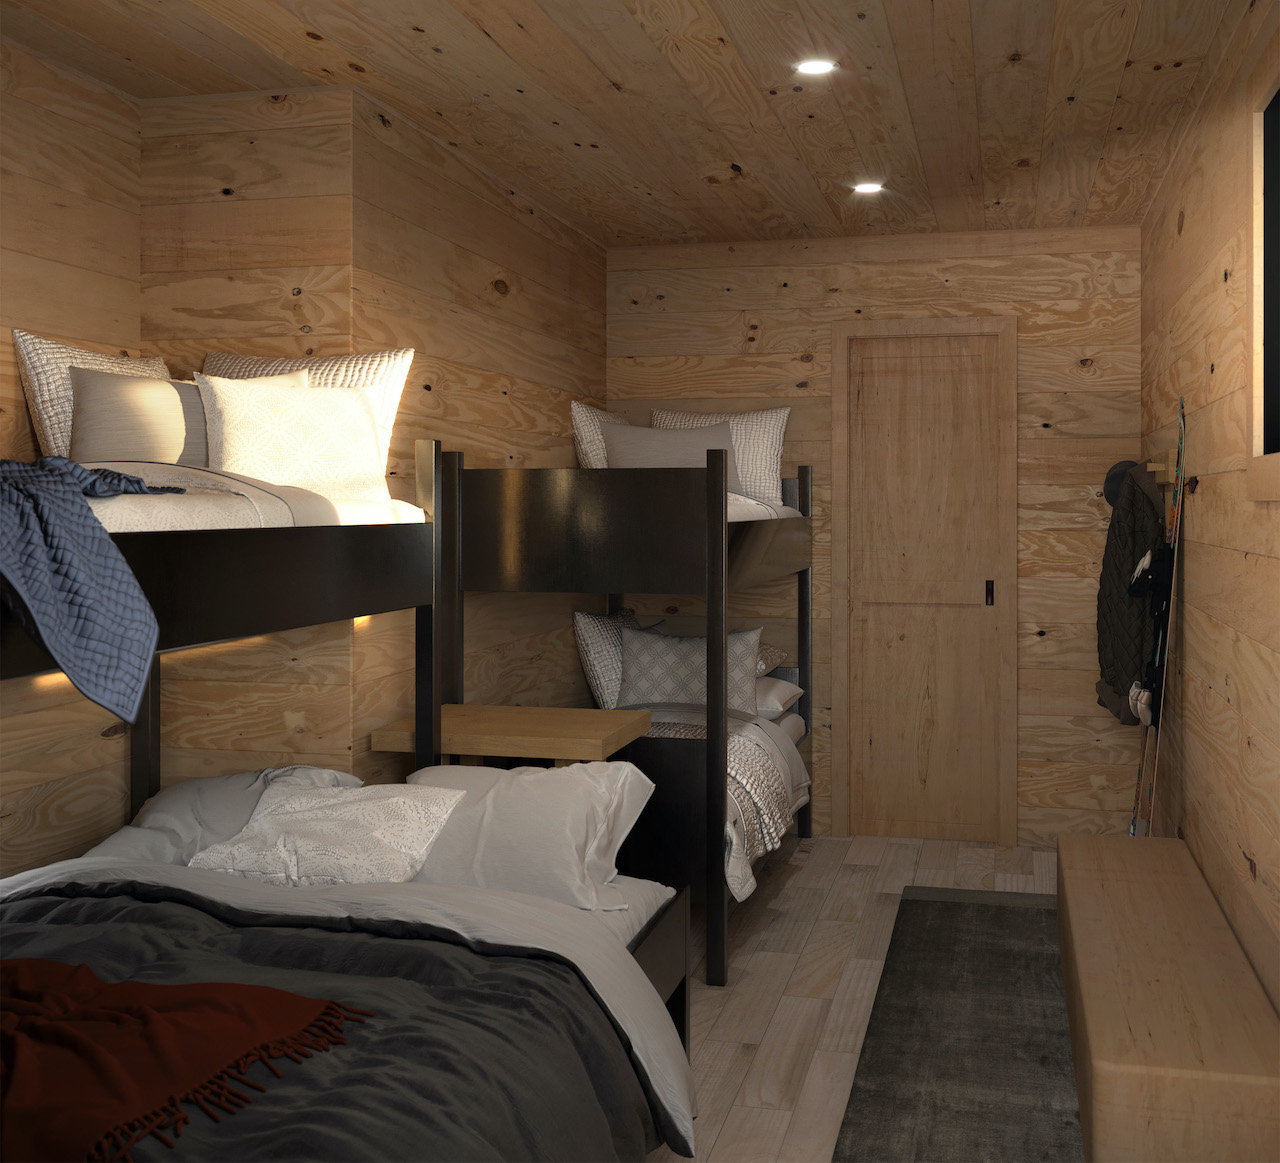 Meet-Constella-A-New-On-Mountain-Cabin-Experience-at-RED-Studio-Cabins-View-01-Cabins-Int